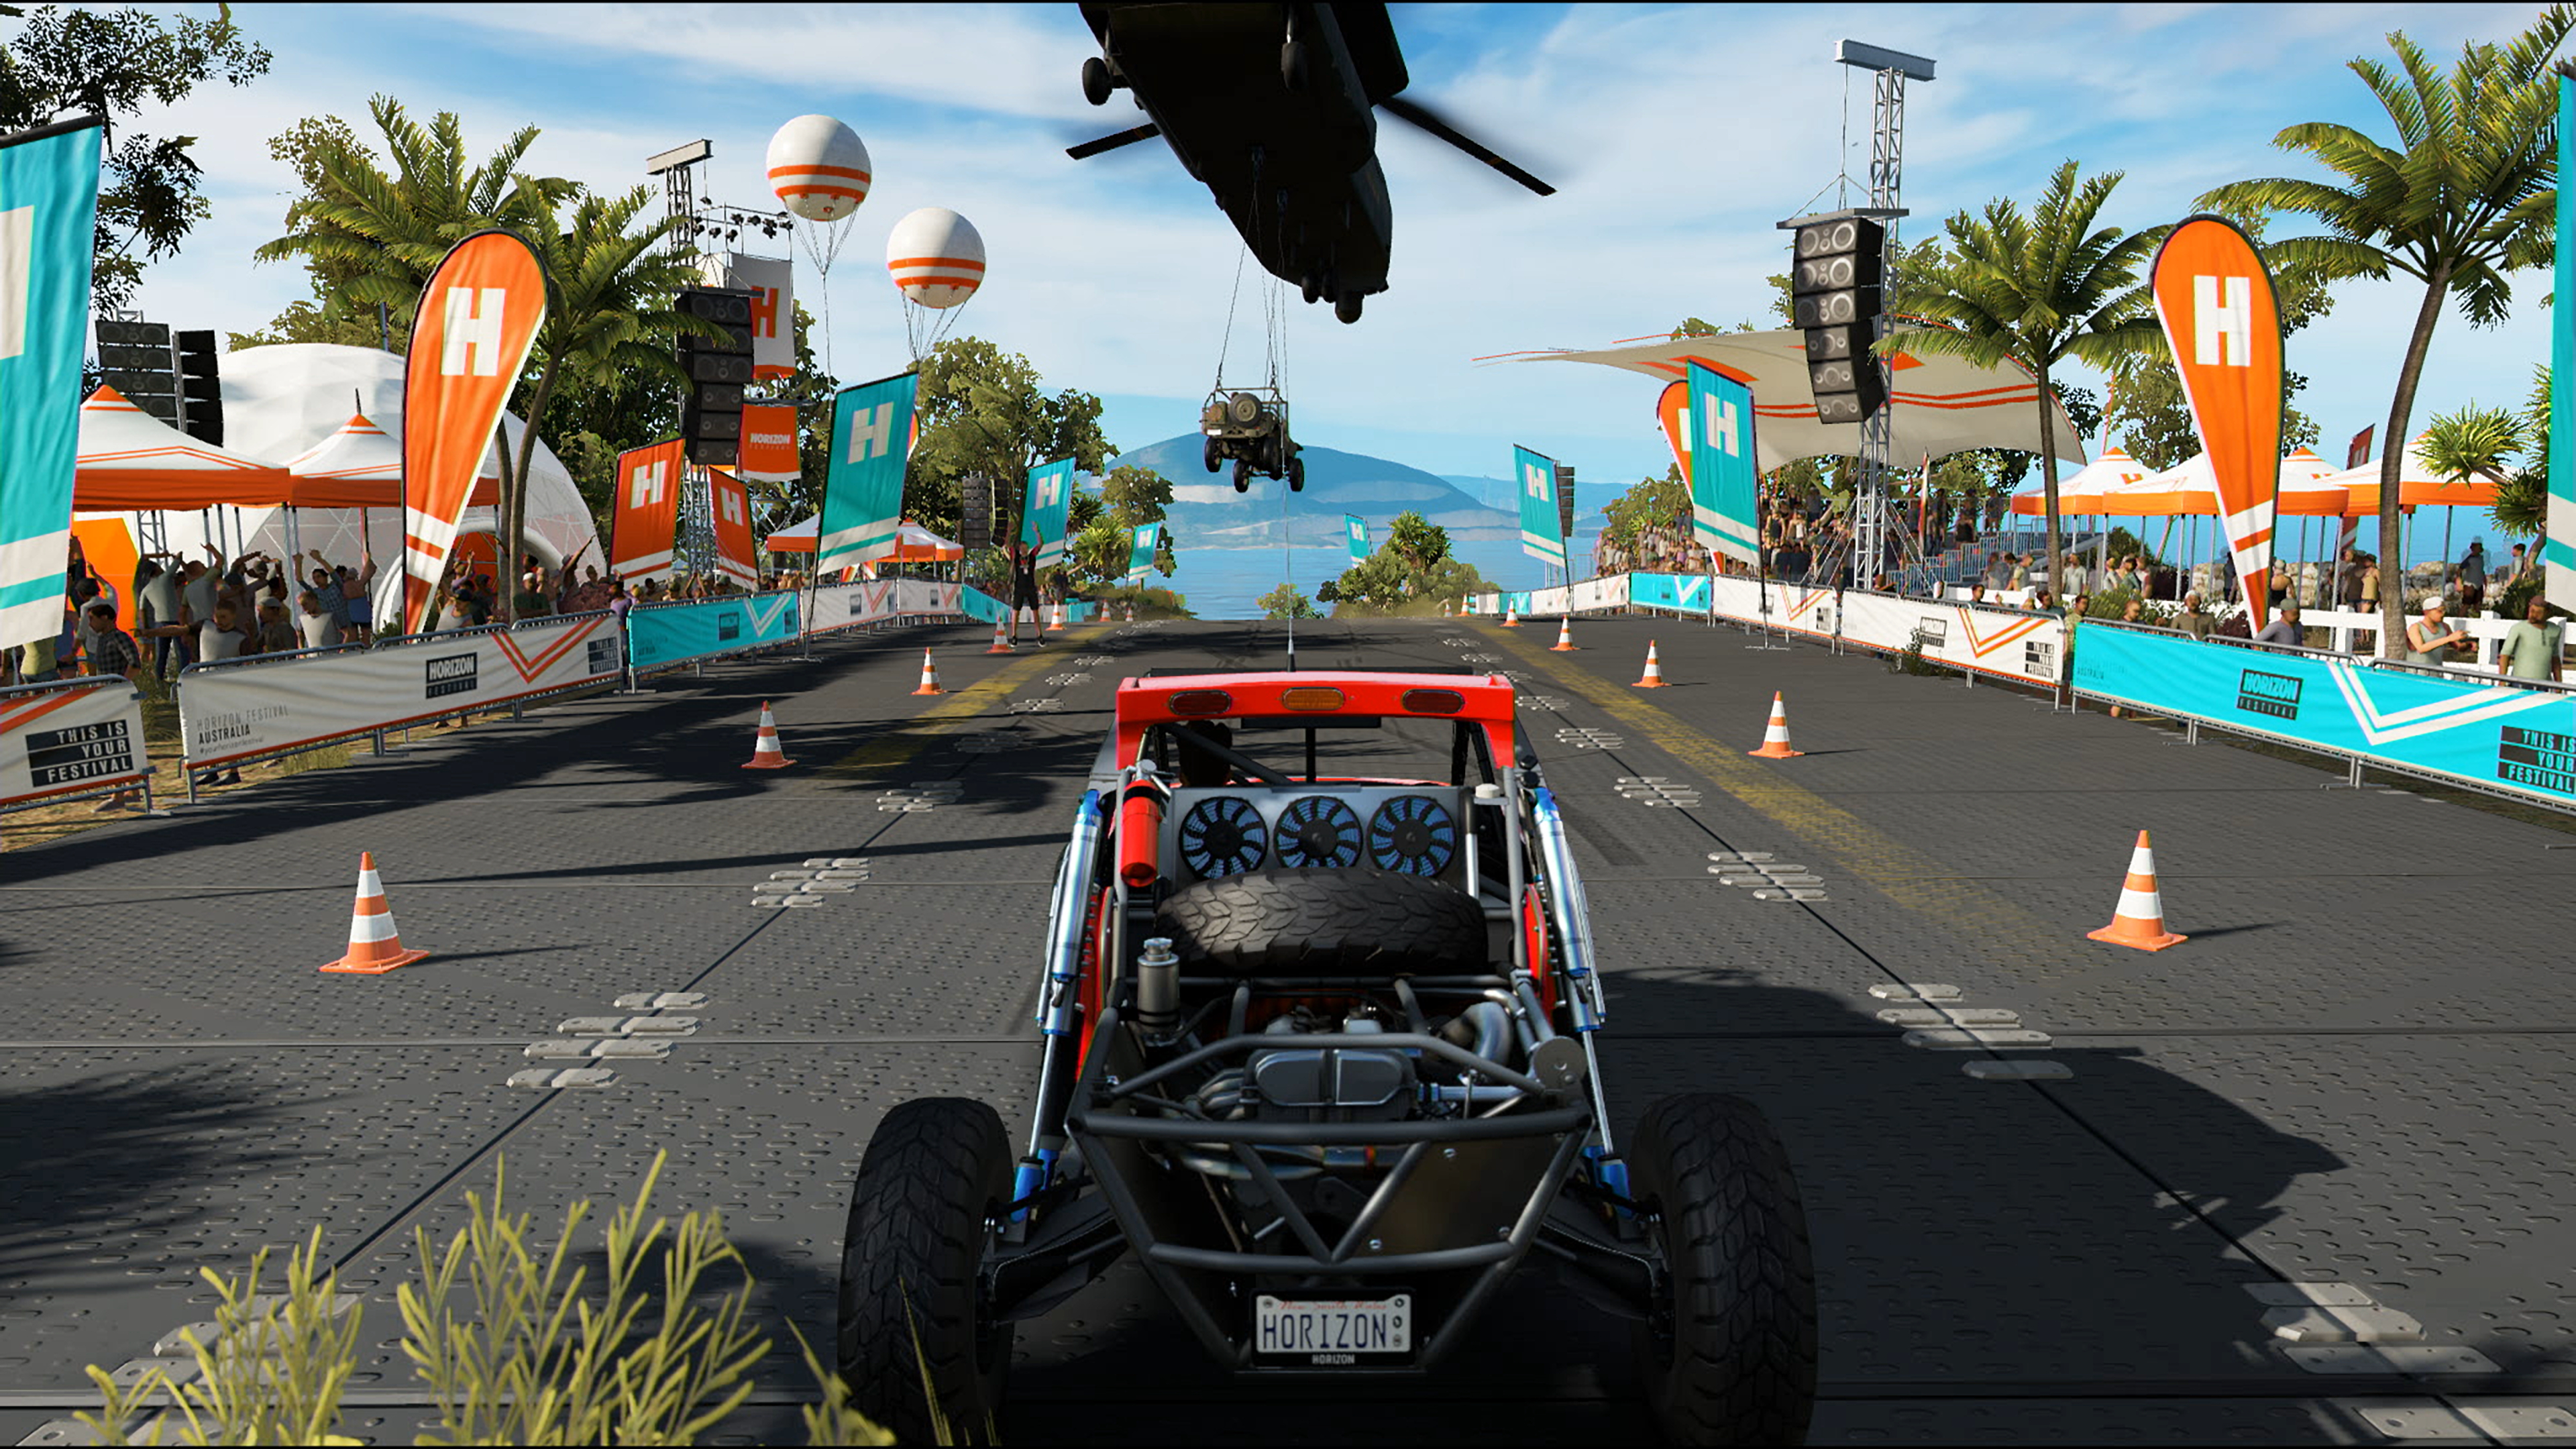 Forza Horizon 3 At 4k 60fps Is Simply Breathtaking Real Lifelike Representation Of The Circuit To Get A Better Look Into Far Distance Around Mountain And Youll See Pc Version Resolving More In Way Detail View Pushed Out